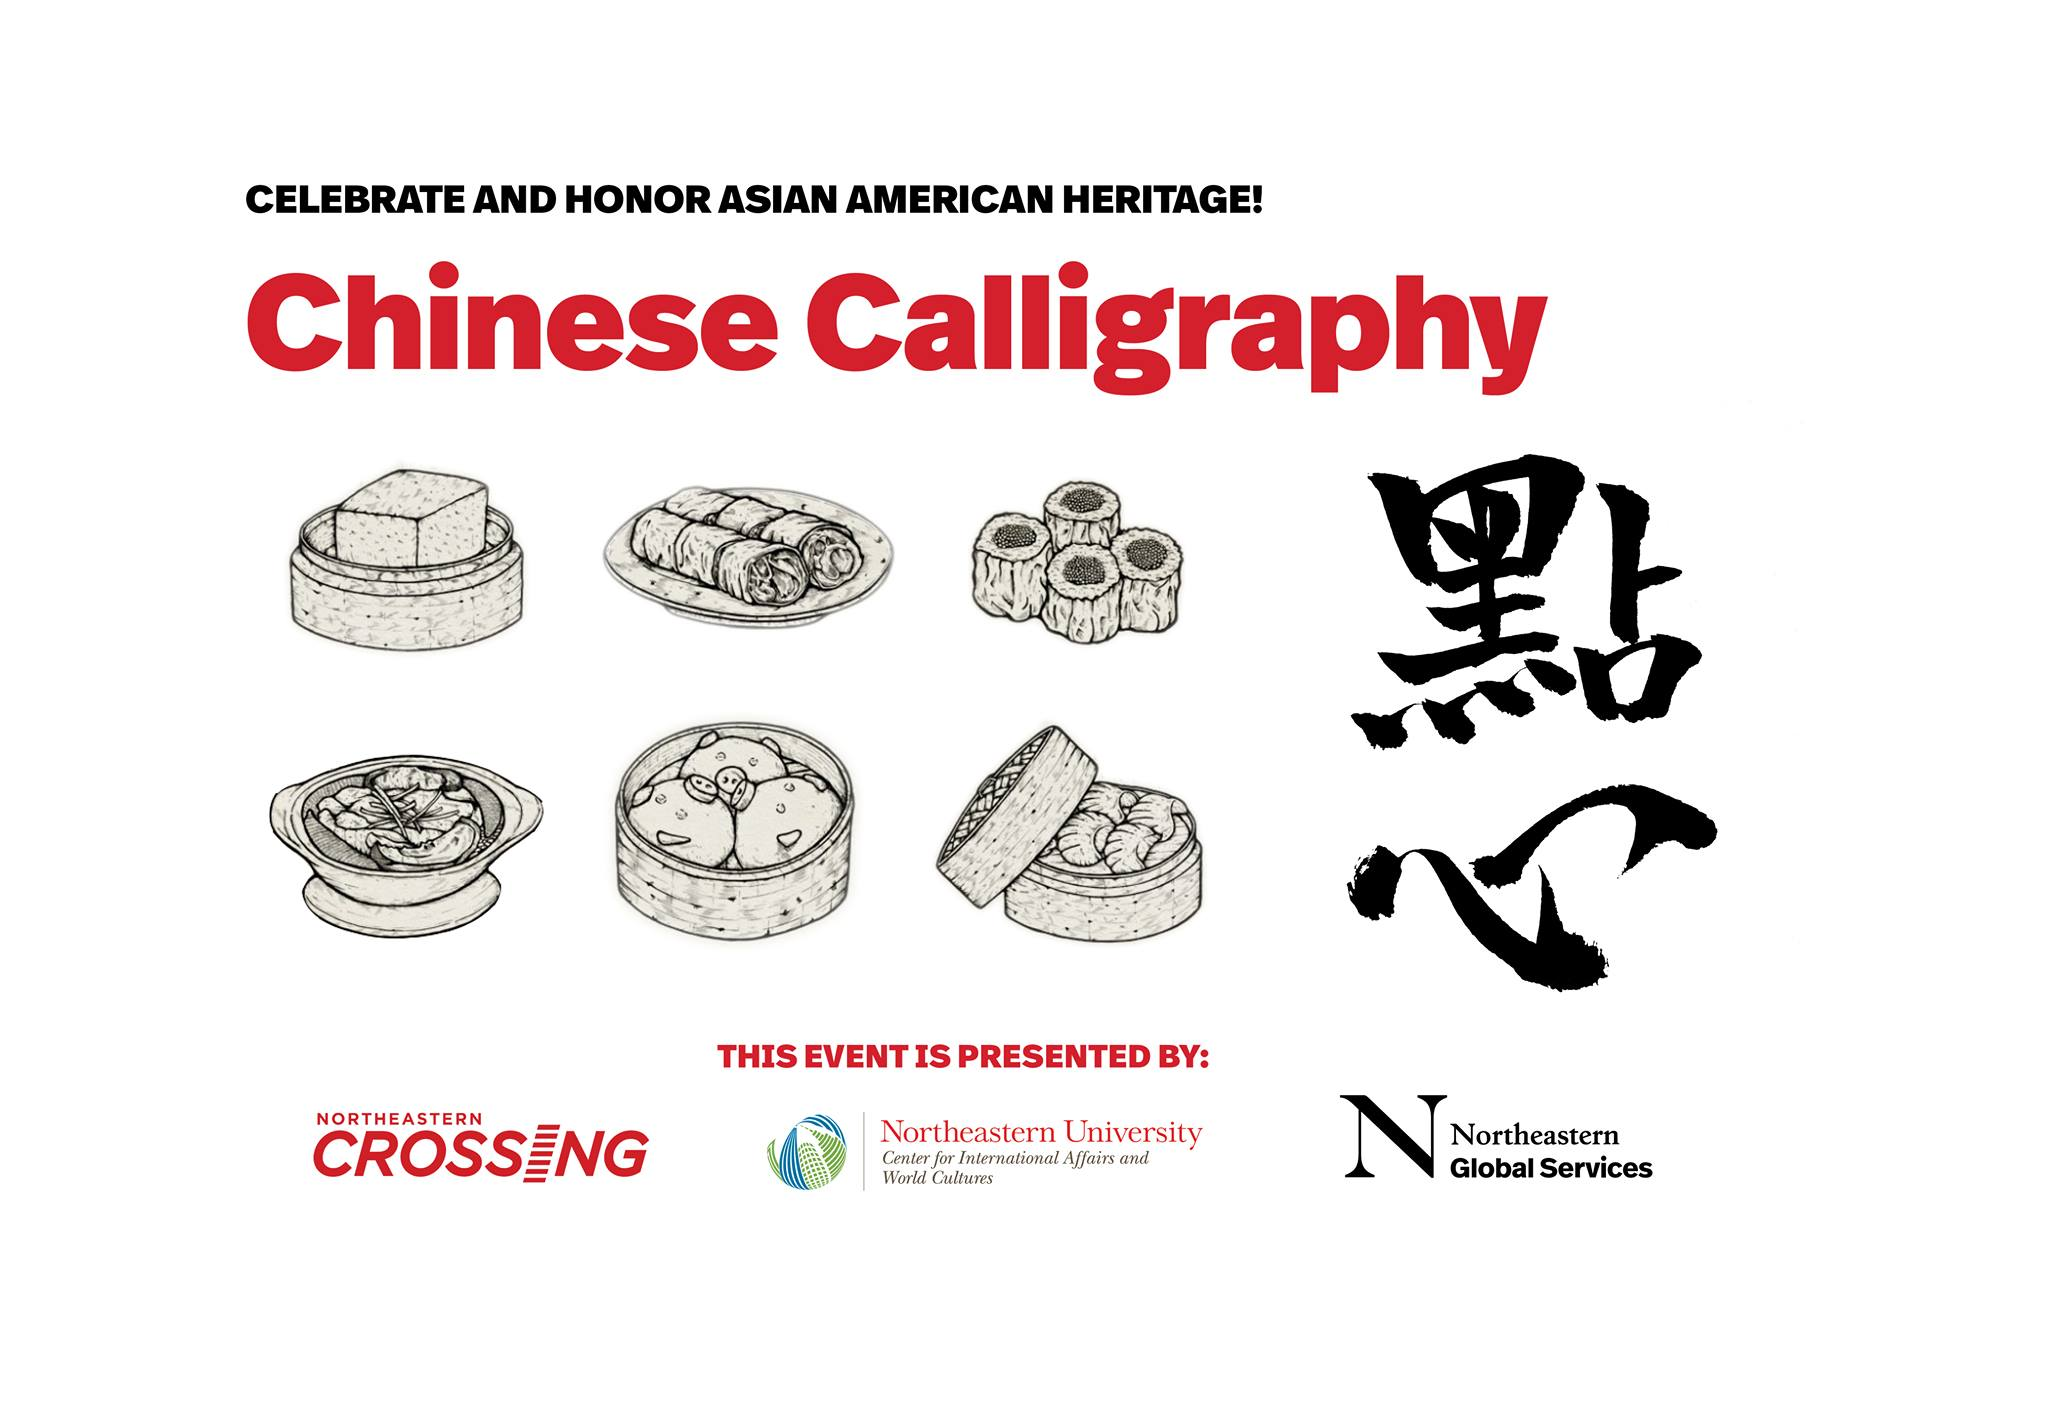 Chinese Calligraphy Workshop presented by Northeastern